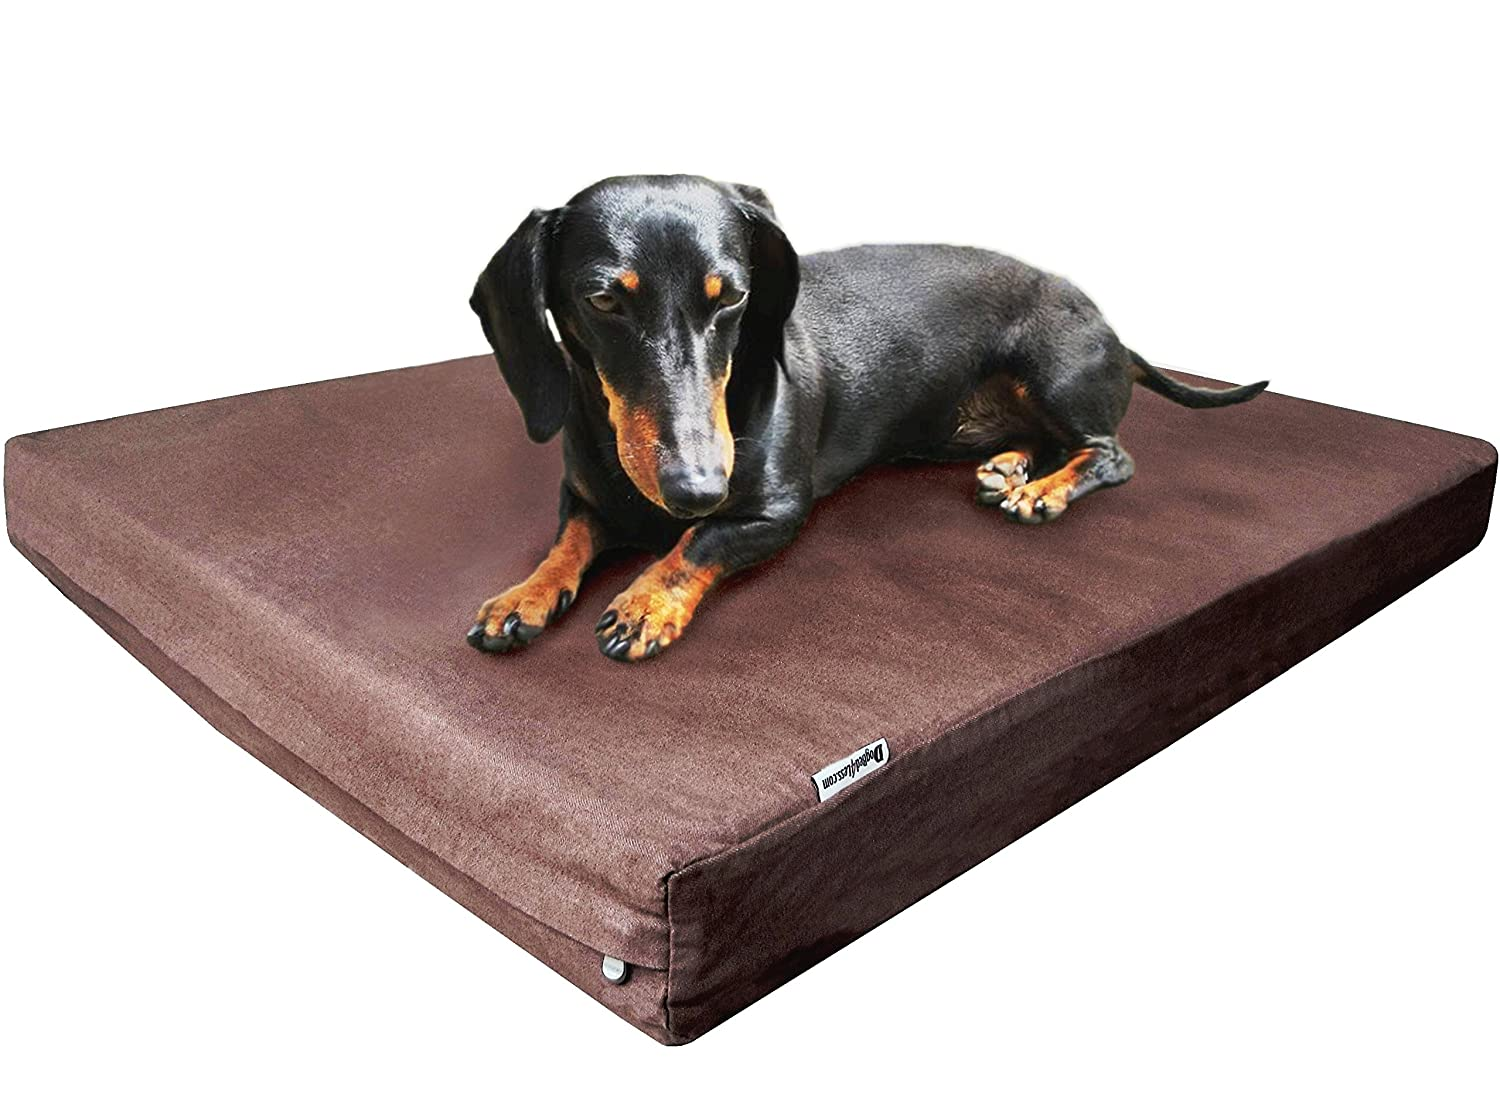 Dogbed4less Durable Memory Foam Dog Bed with 2 Denim Covers and Waterproof Liner for Medium Large Pet Fit into 42 X28 Crate